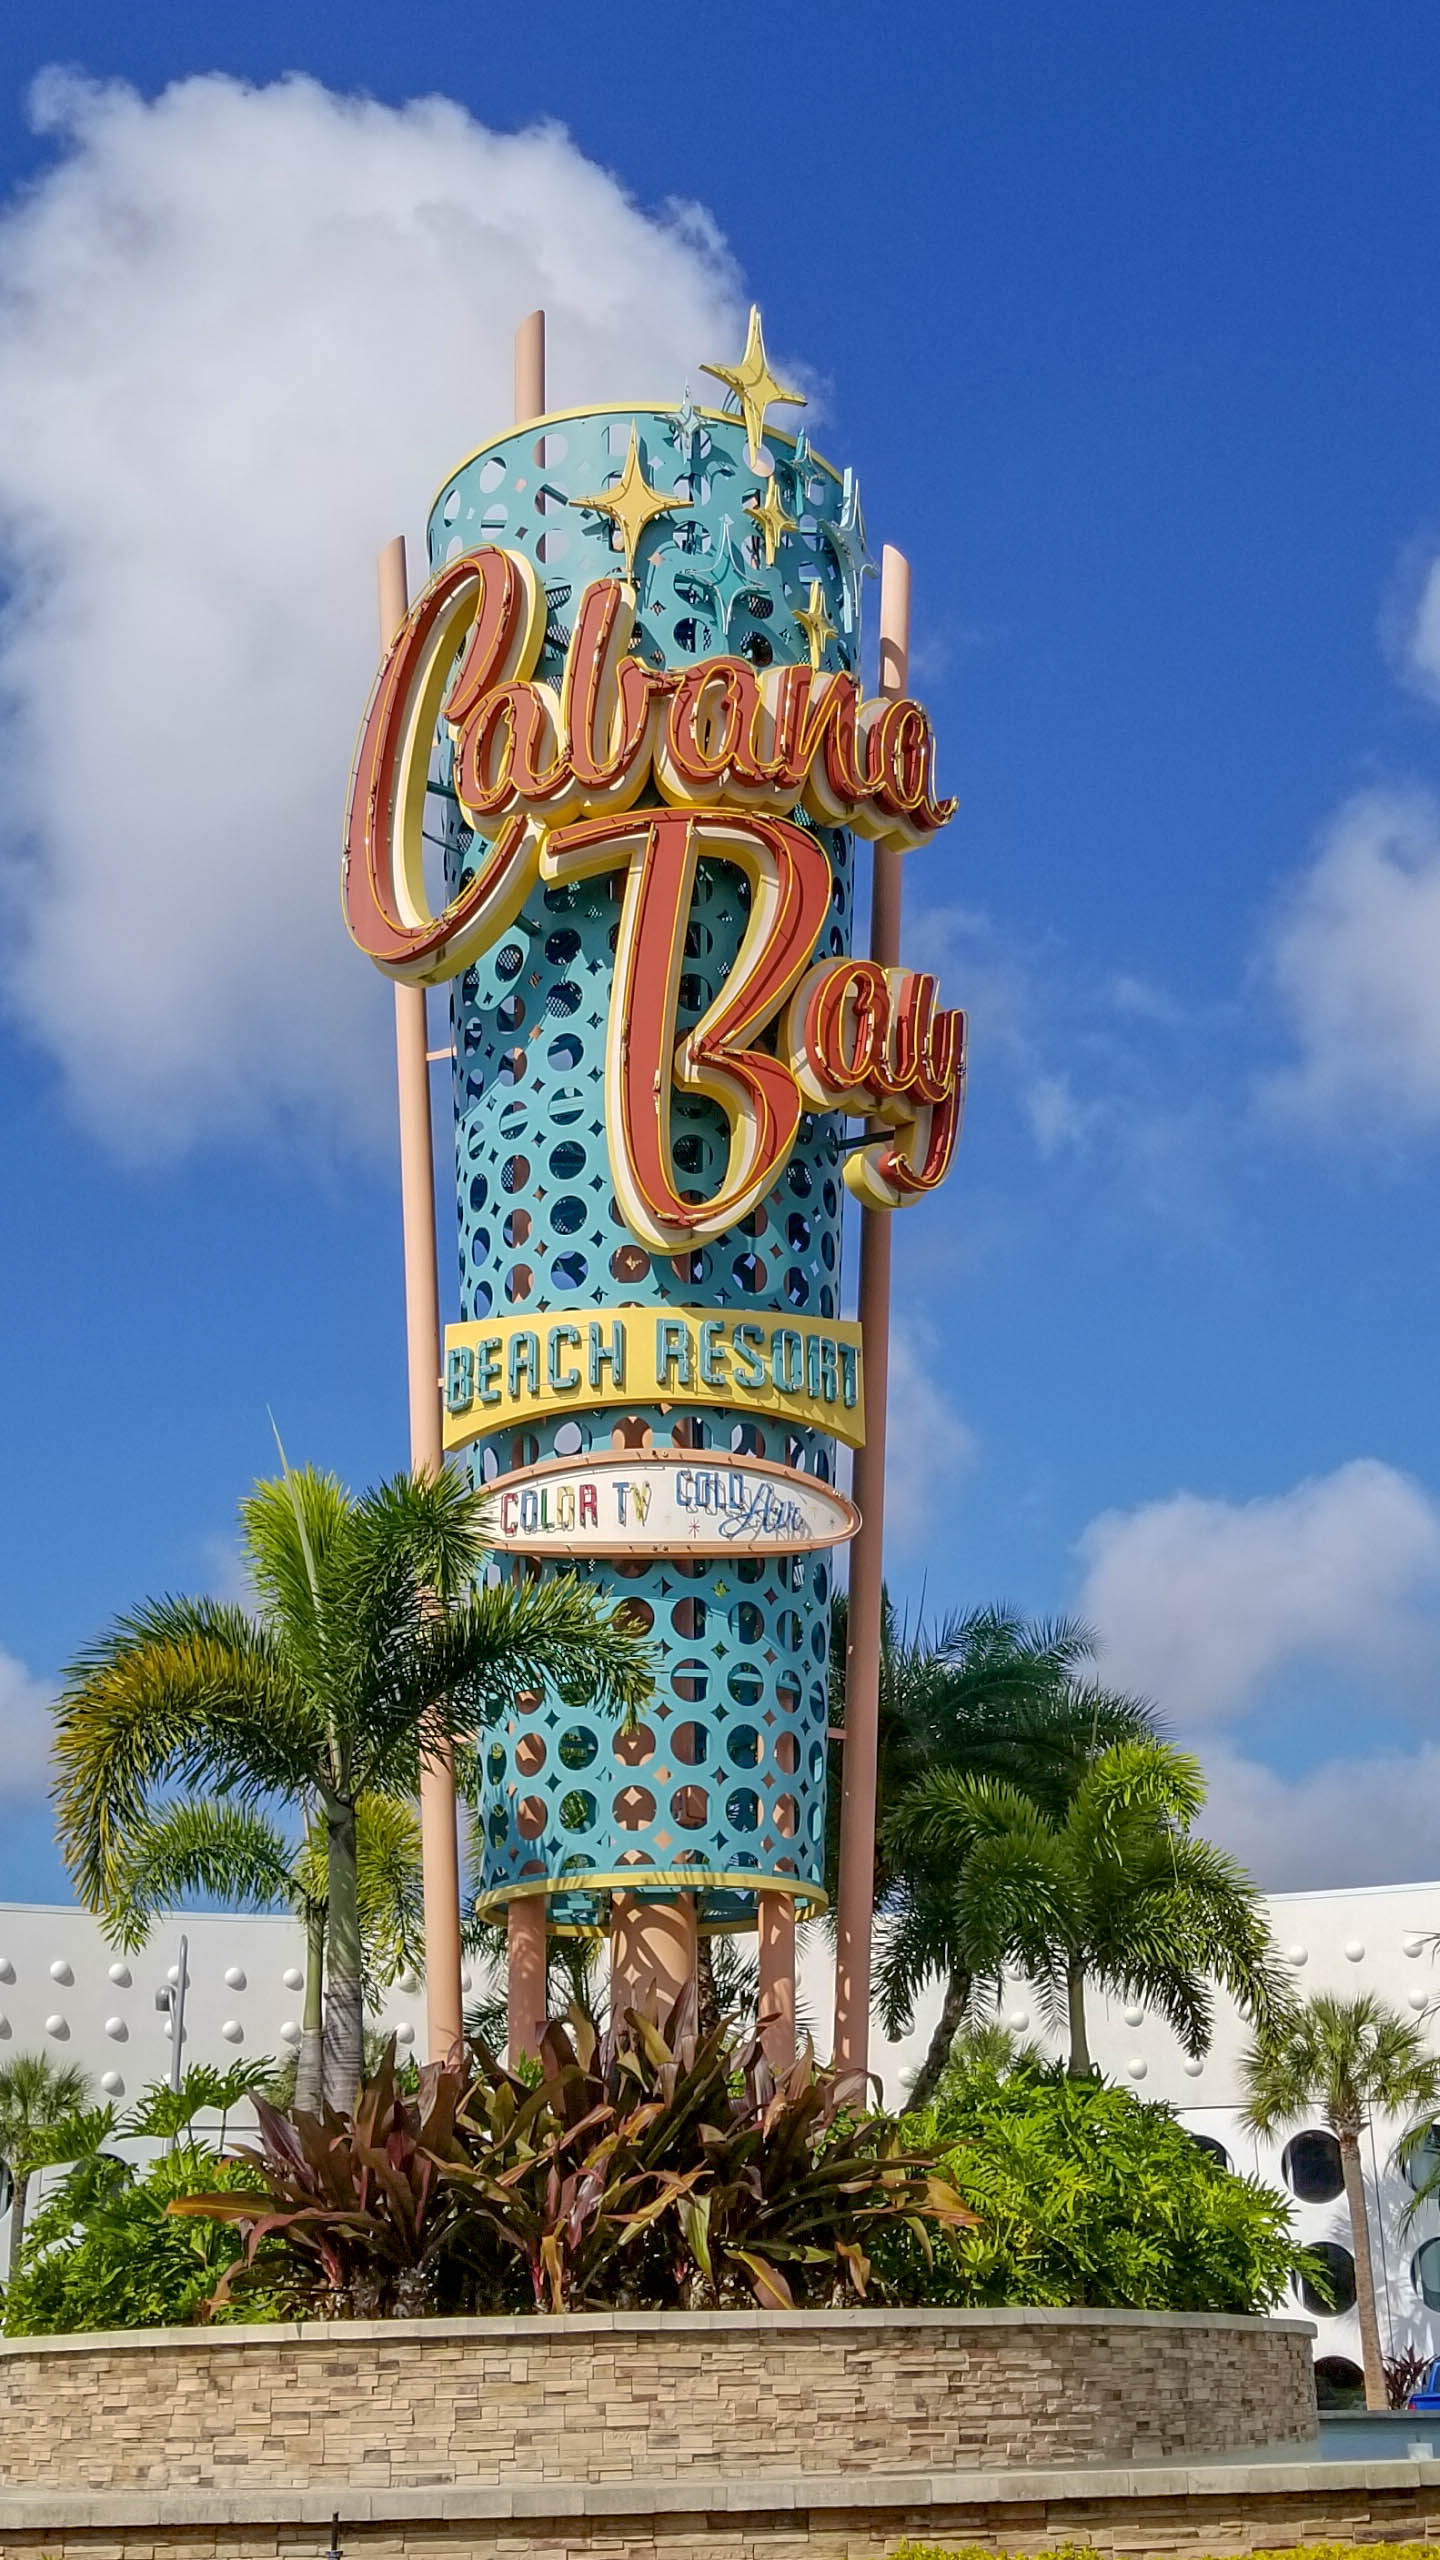 Staying at Universal's Cabana Bay Beach Resort is like stepping back into the iconic 1950s and '60s. The retro themed Central Florida resort offers many conveniences and ways to have fun or relax. The resort is conveniently located steps away from Universal's Volcano Bay water park with a private entrance for guests.